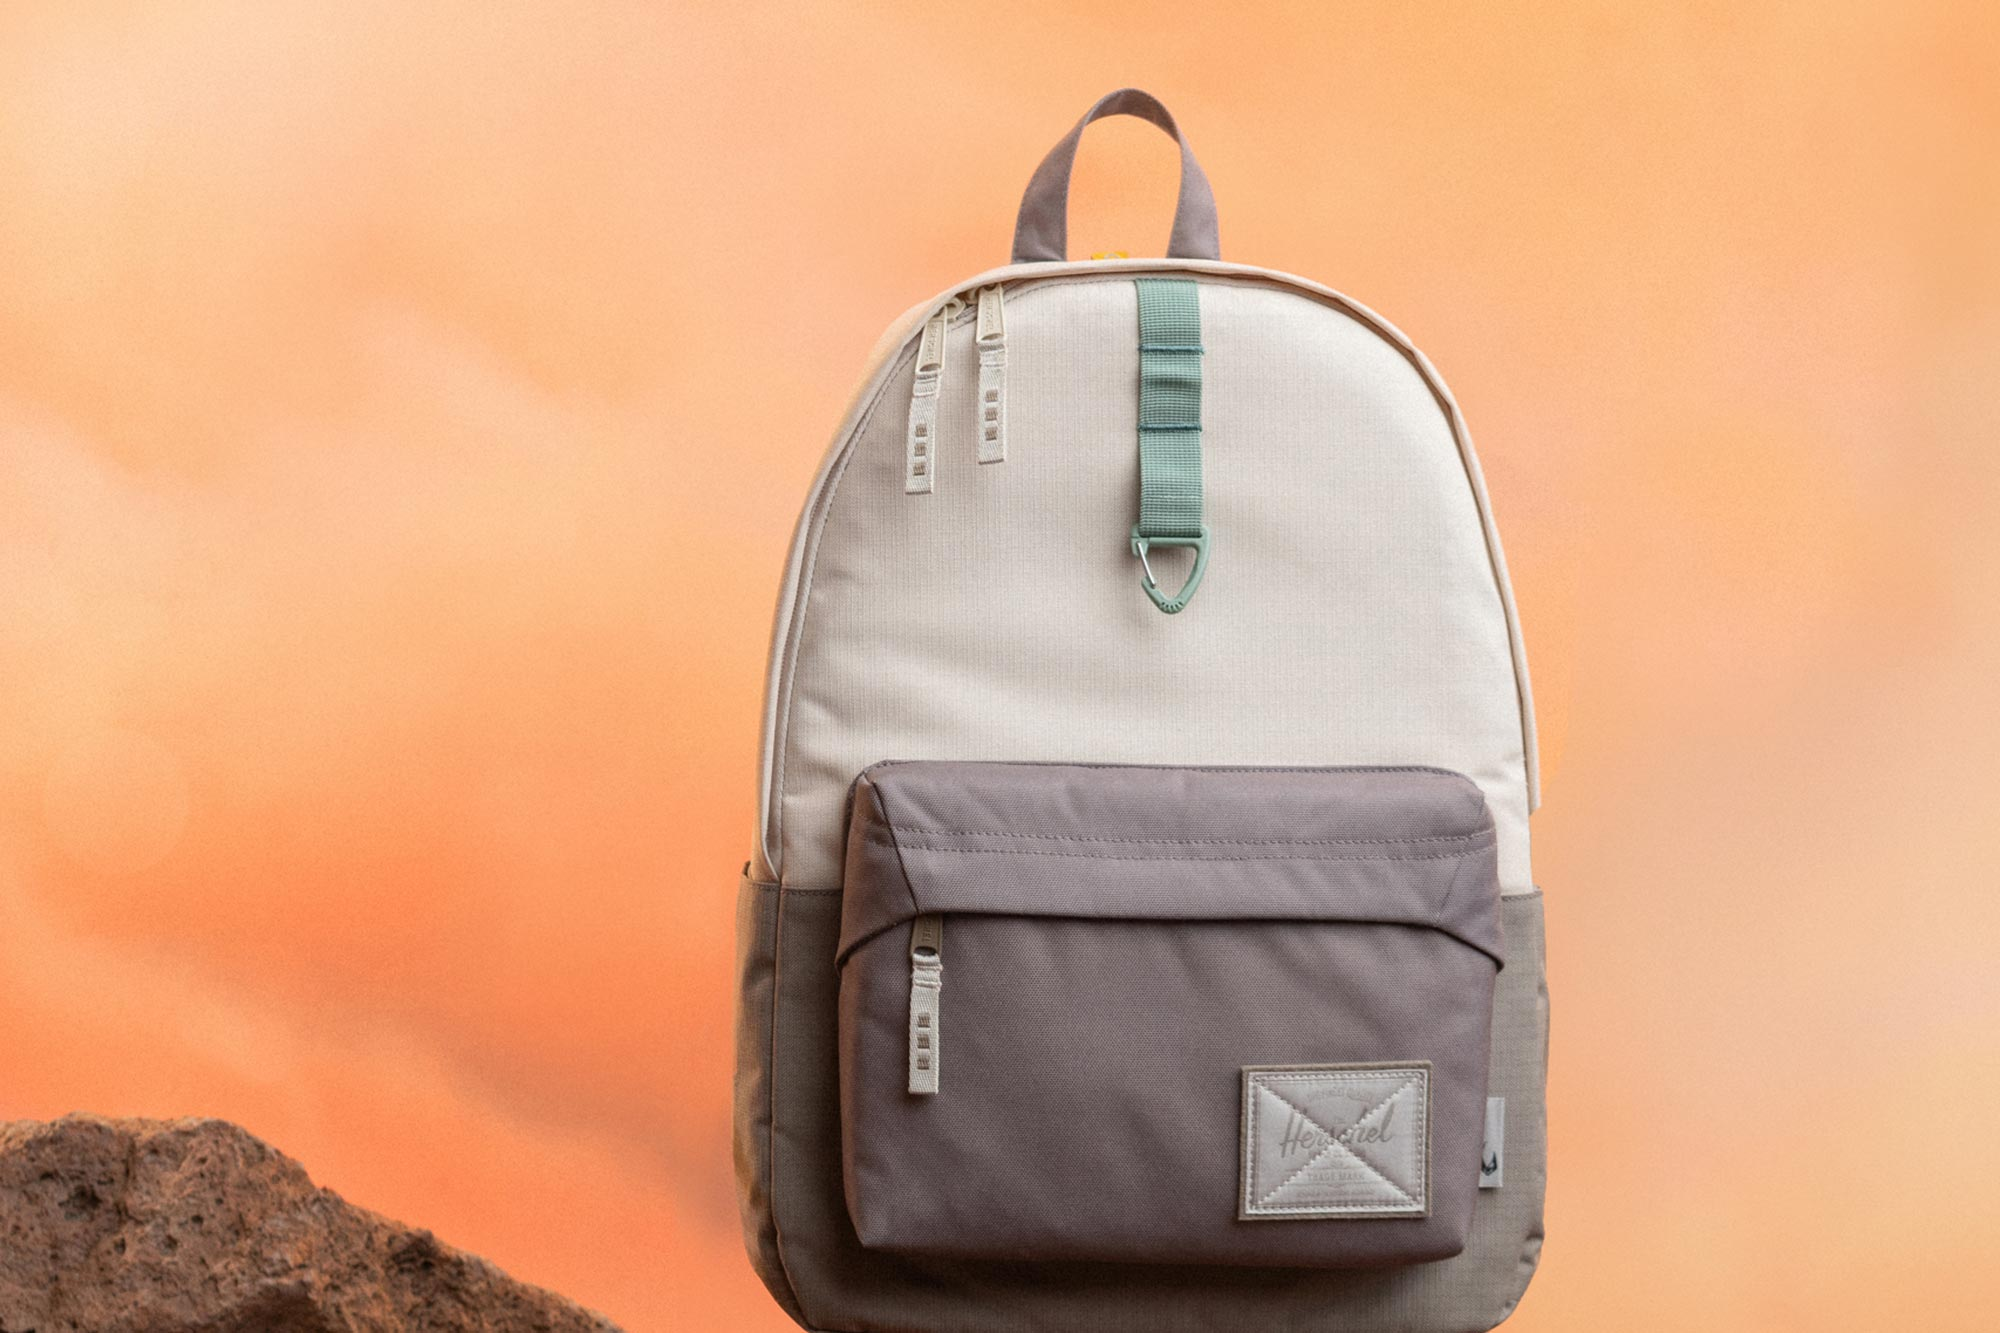 Herschel releases Mandalorian-themed backpacks for Star Wars Day